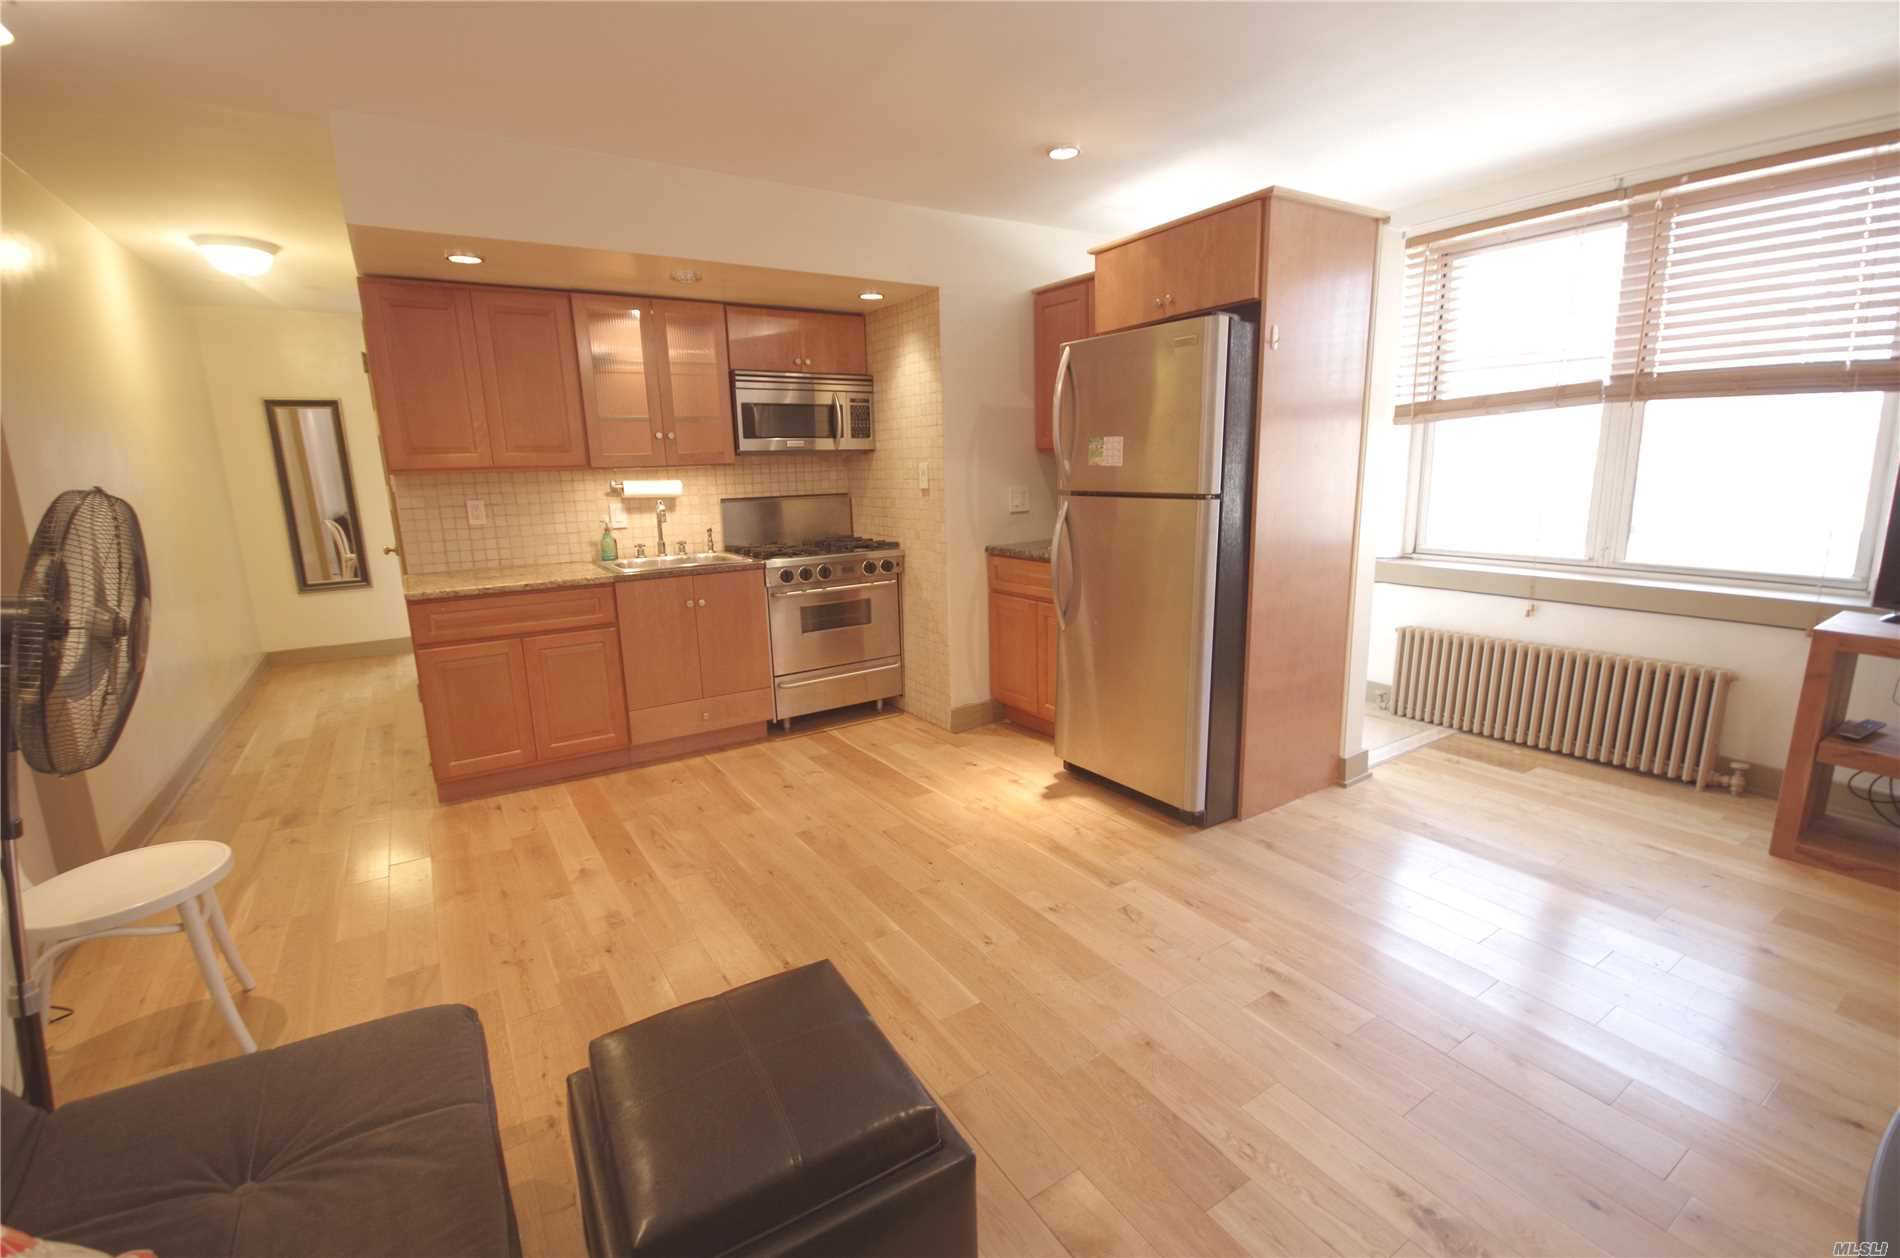 Sunny And Bright Unit, Updated Kitchen And Bath, Nice Hardwood Floors; Low Maintenance. Closed To Lirr And Bus Station Q28/Q65 Ti Downtown Flushing. Laundry Room Around. Income And Credit Require By The Board. No Flip Tax 100% Equity. Assessment Fee $74.52 End Of 12/31/2018. Coop Tax Bat Credit $97.46